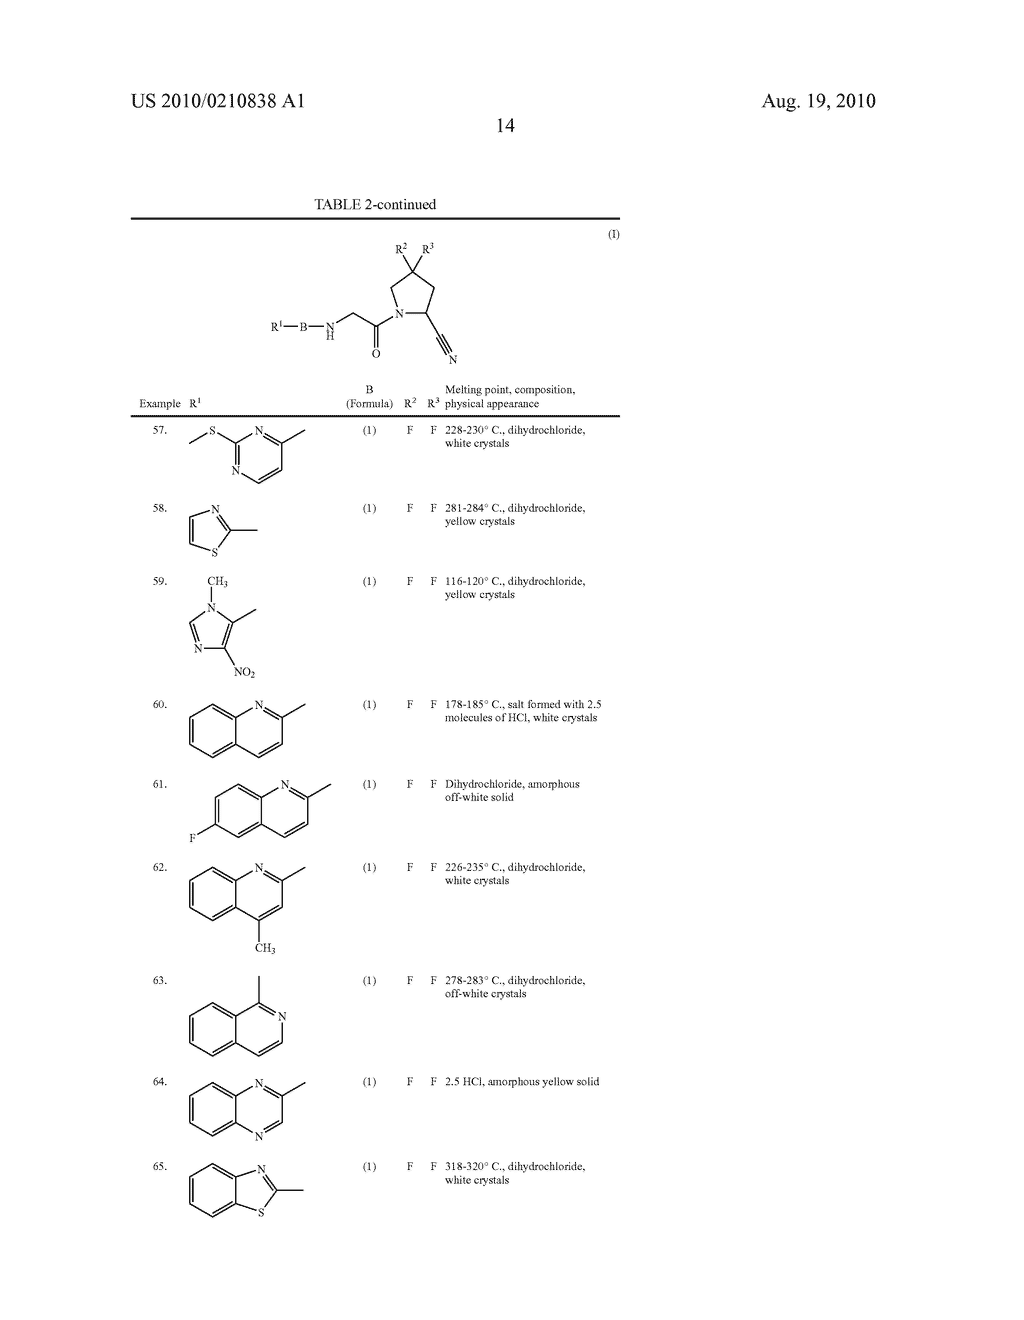 FLUOROPYRROLIDINES HAVING DIPEPTIDYL PEPTIDASE ENZYME INHIBITORY ACTIVITY - diagram, schematic, and image 18